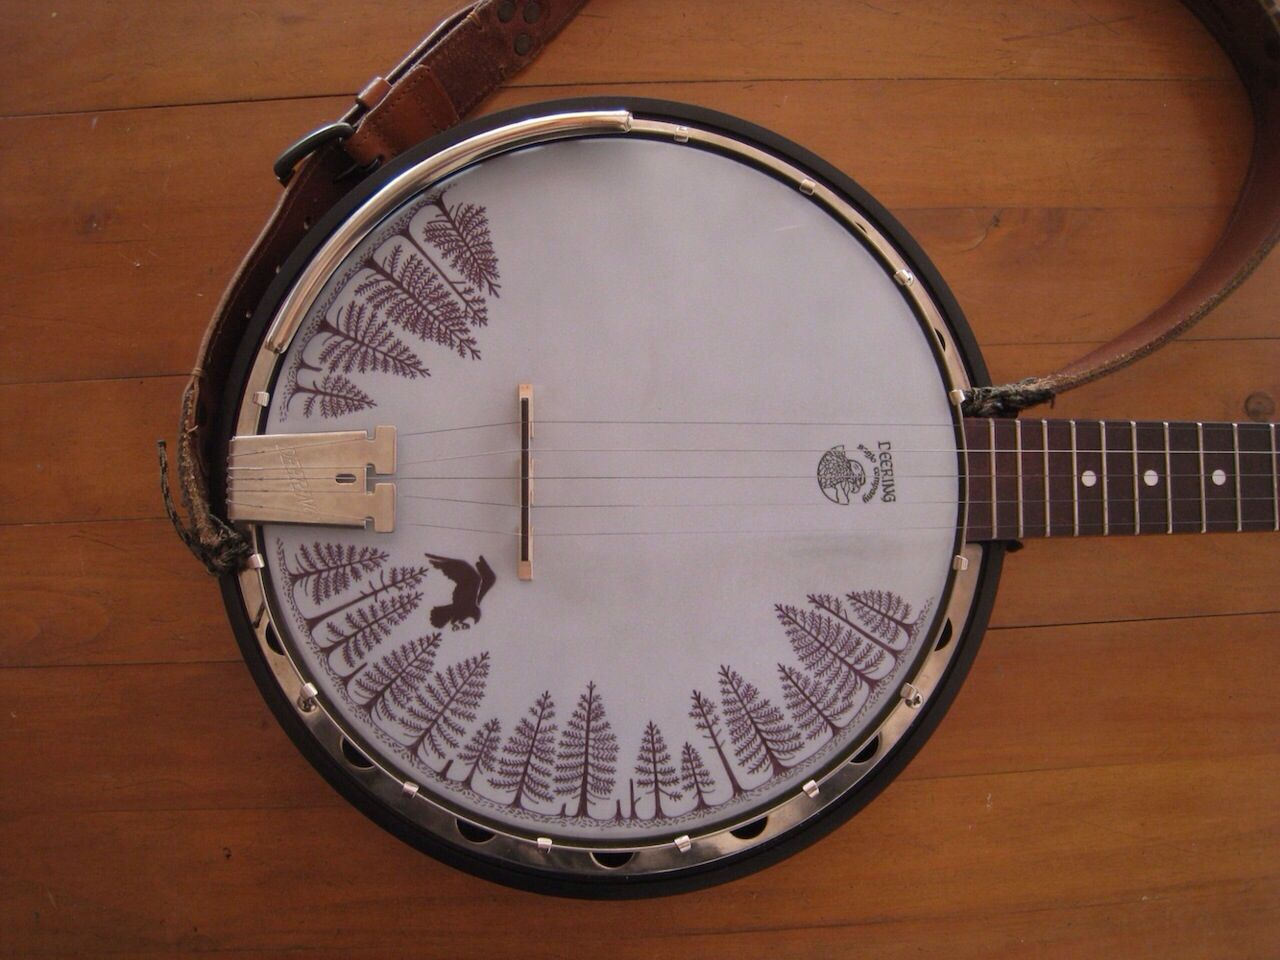 Banjo lick of the day